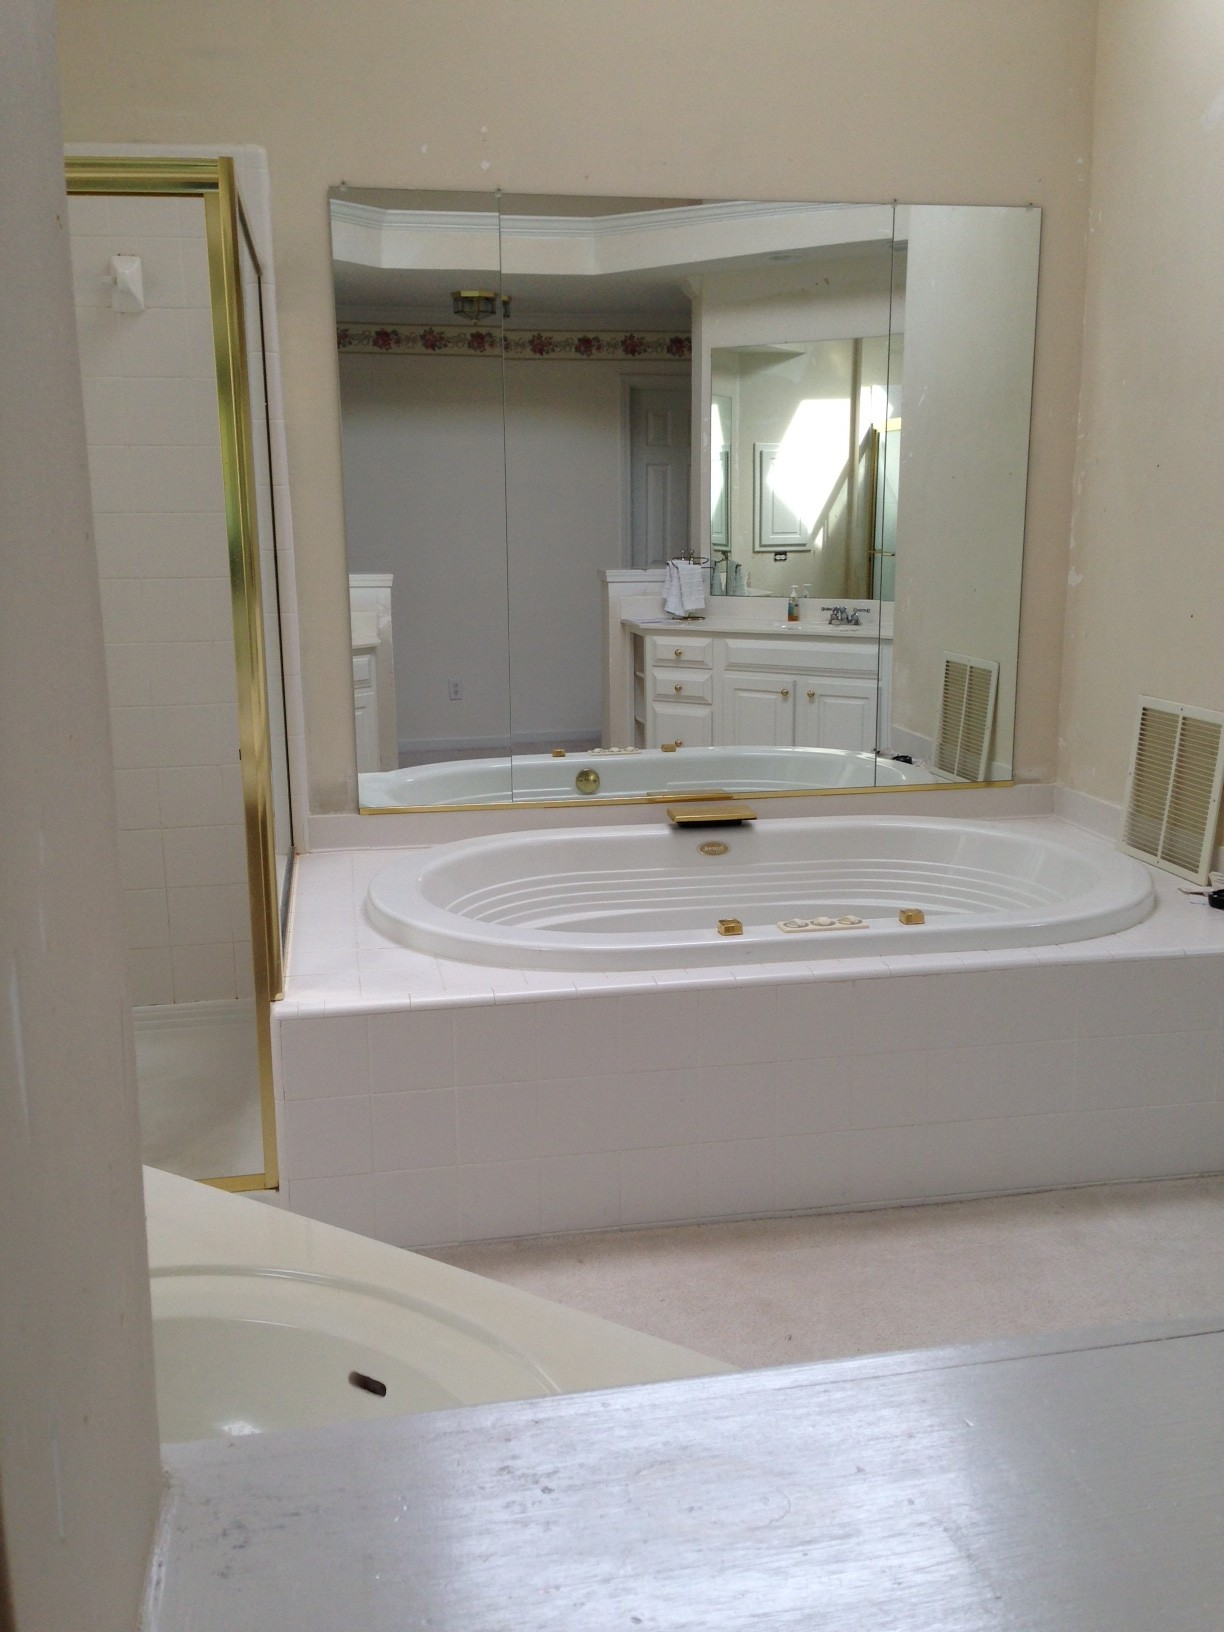 Renovating a Bathroom, Part 1